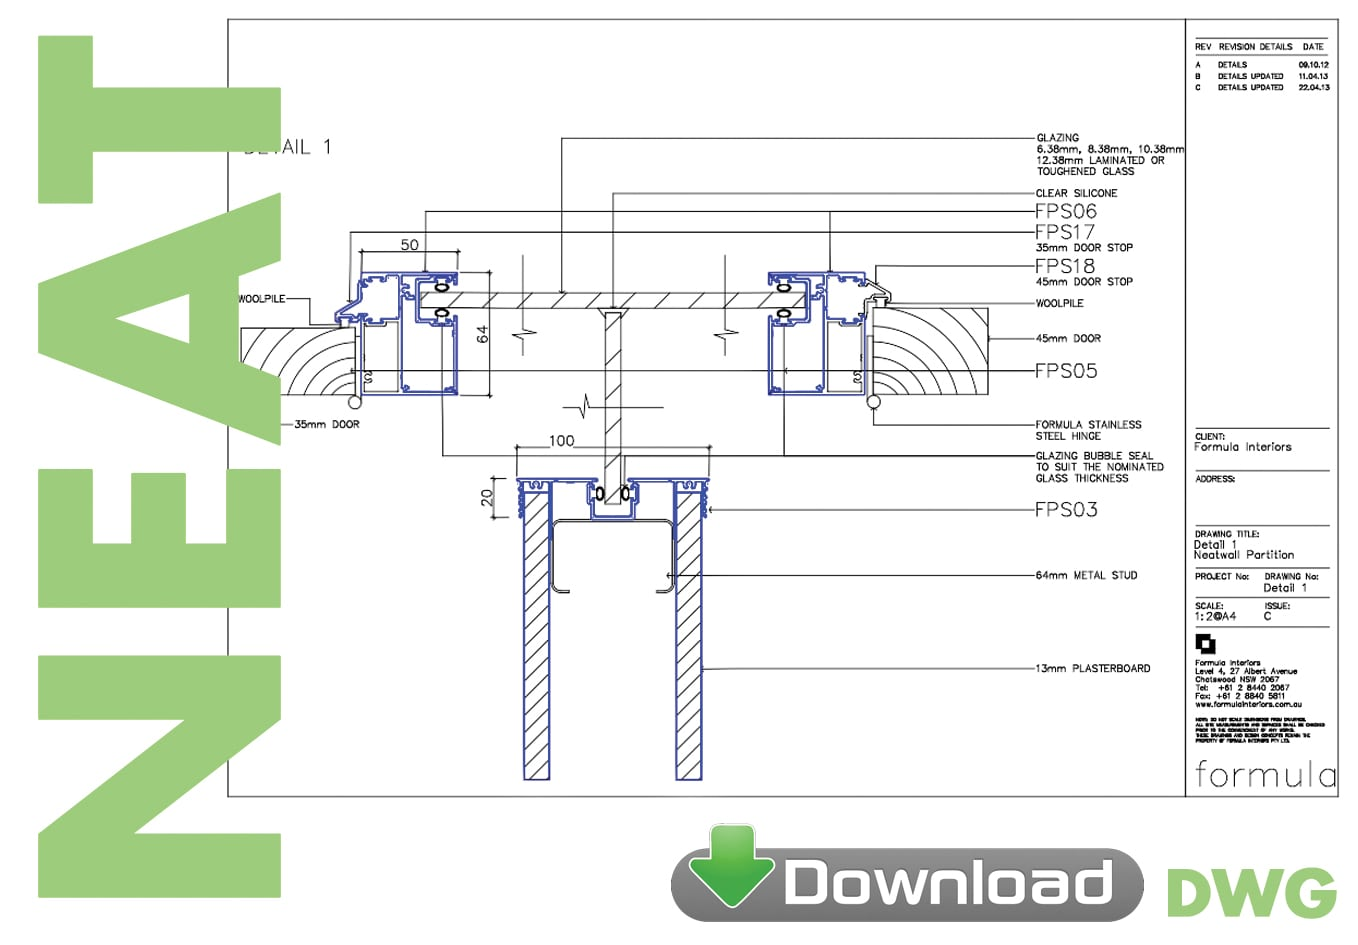 Neat Partition System DWG download - Formula Interiors